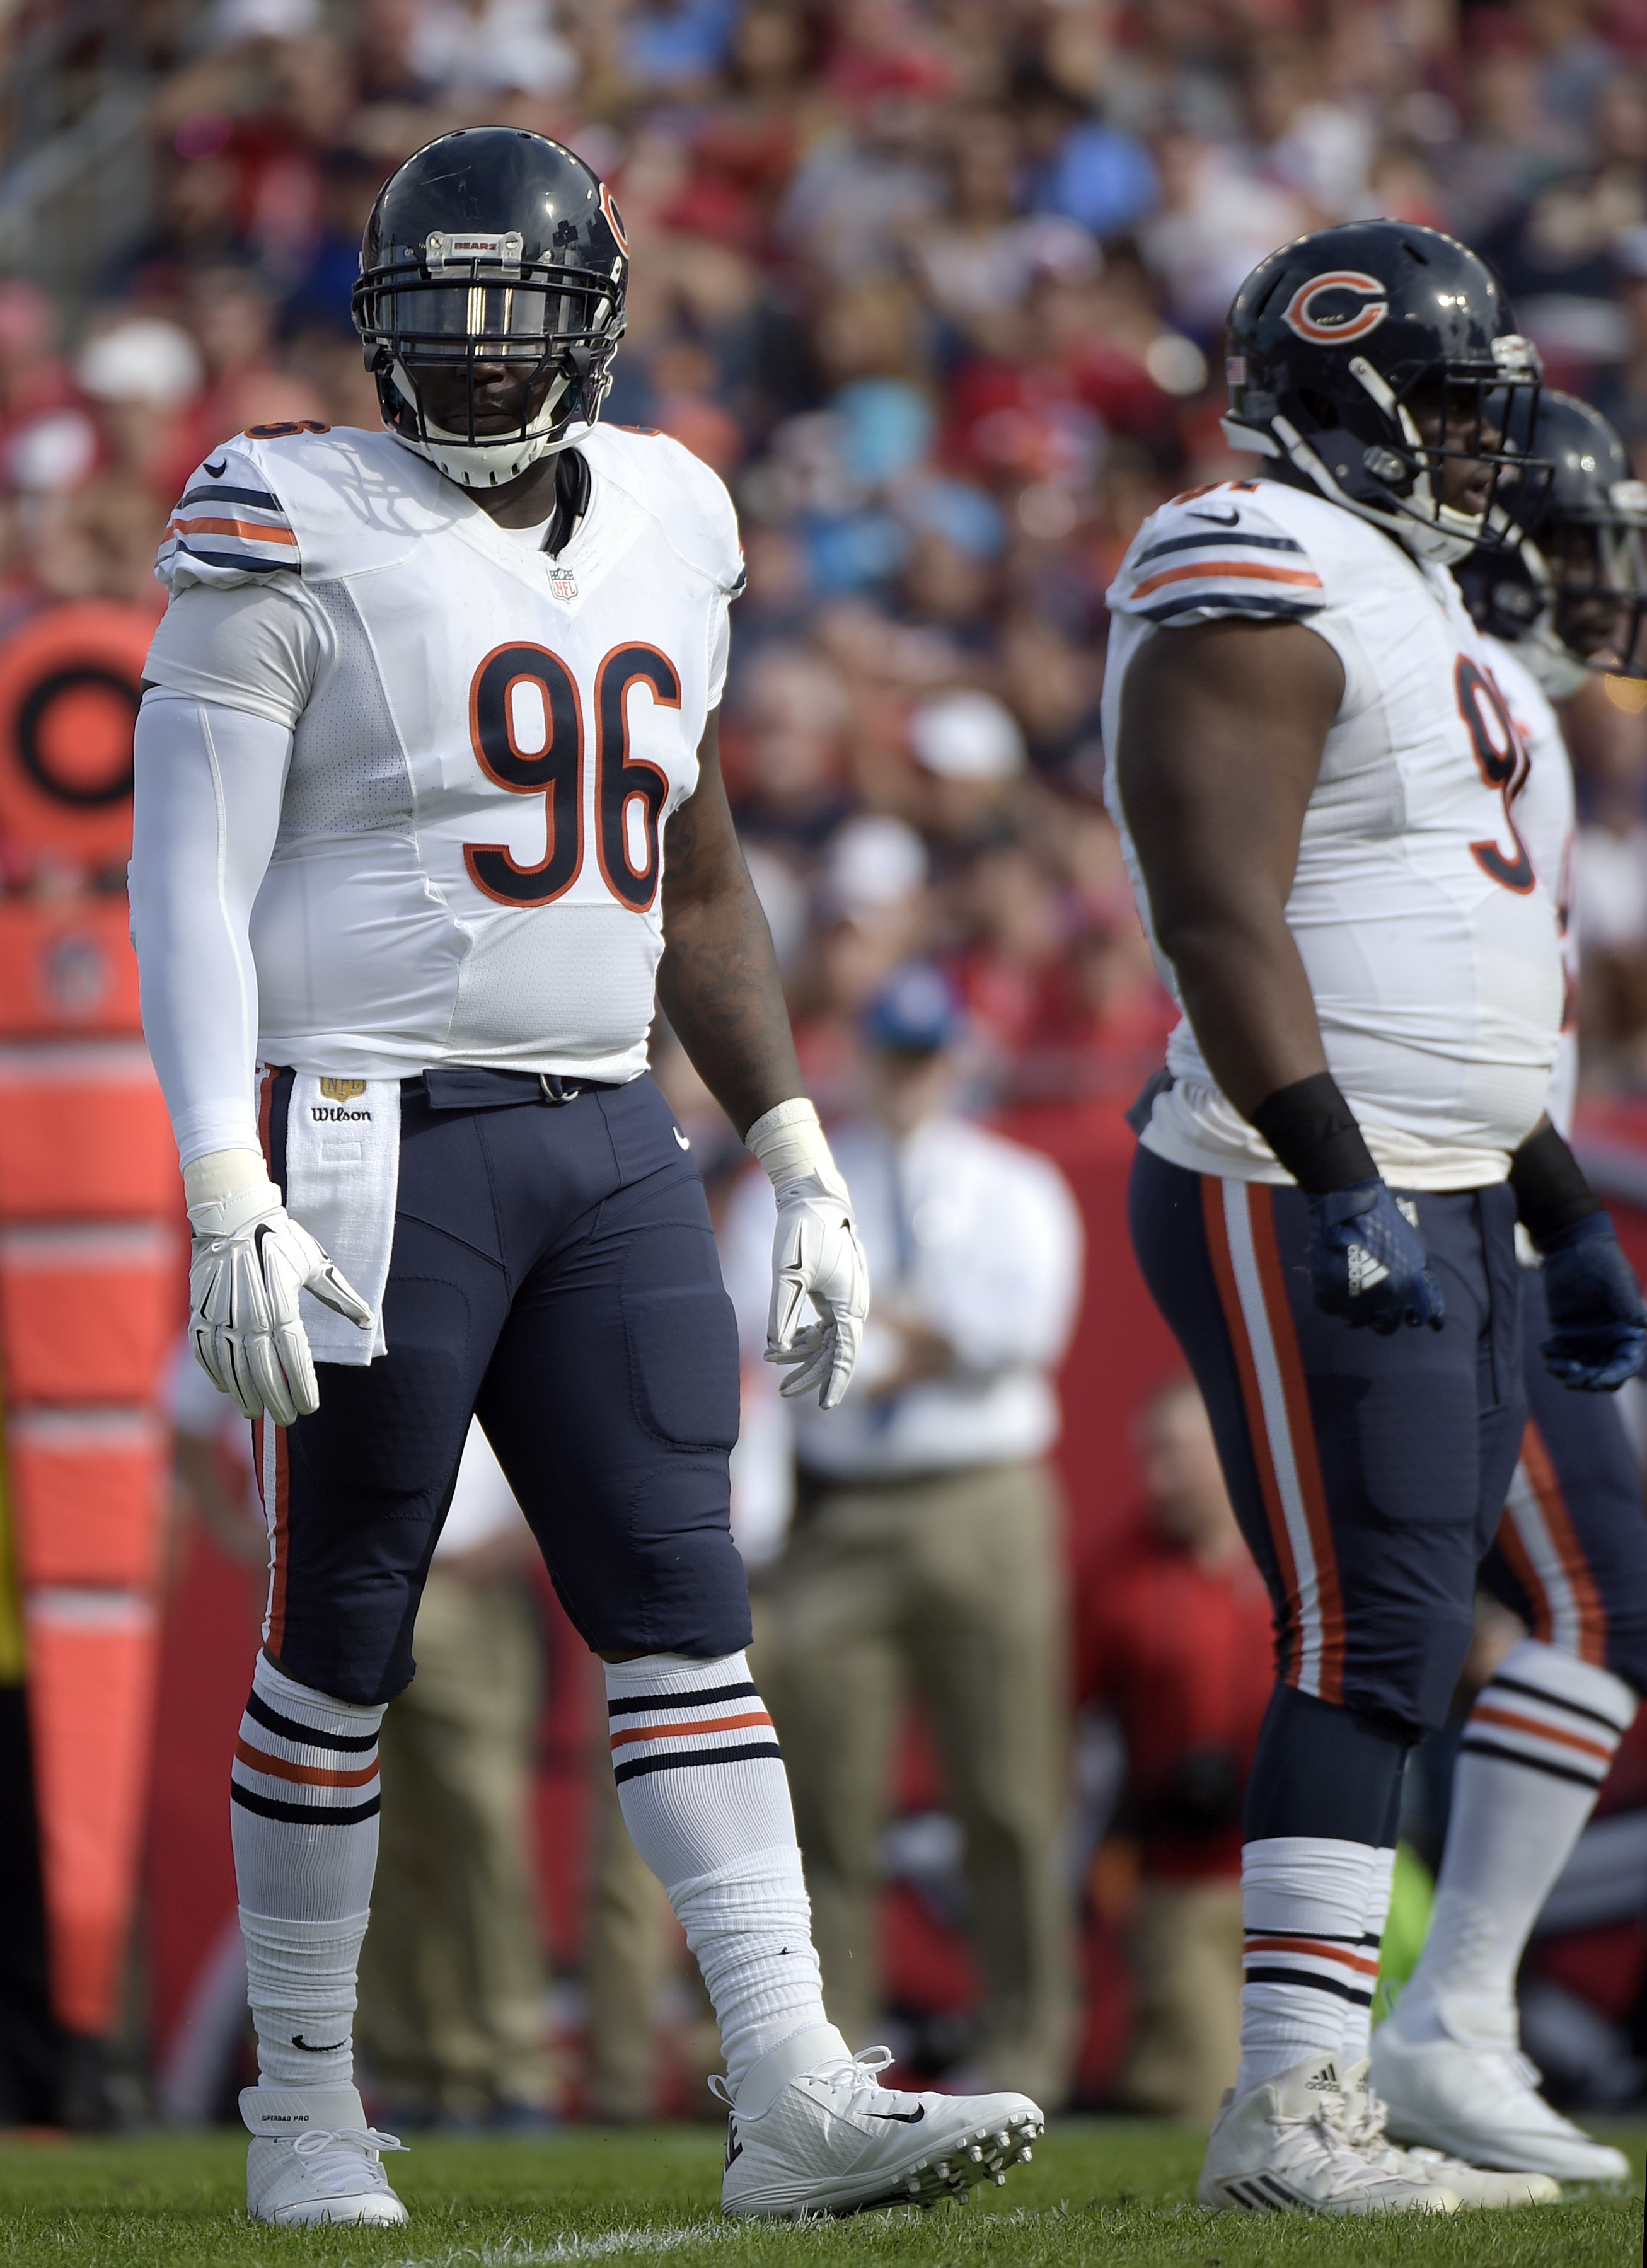 FILE - In this Dec. 27, 2015, file photo, Chicago Bears defensive end Jarvis Jenkins (96) stands at the line of scrimmage during the first half of an NFL football game against the Tampa Bay Buccaneers in Tampa, Fla. The New York Jets have signed free-agen